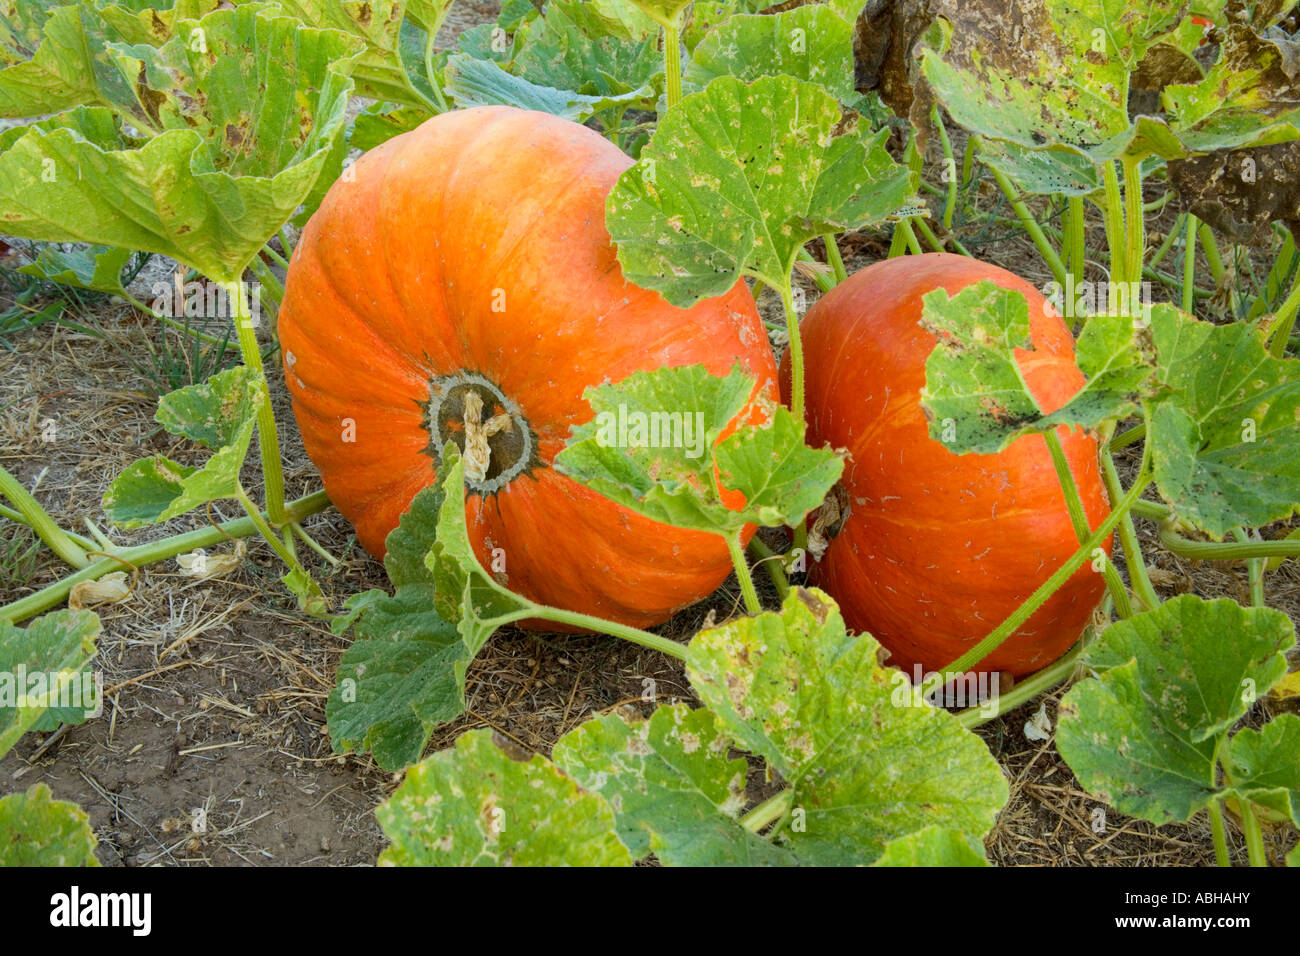 Pumpkins   'Rouge Vif d Etampes'  growing in field,  California - Stock Image